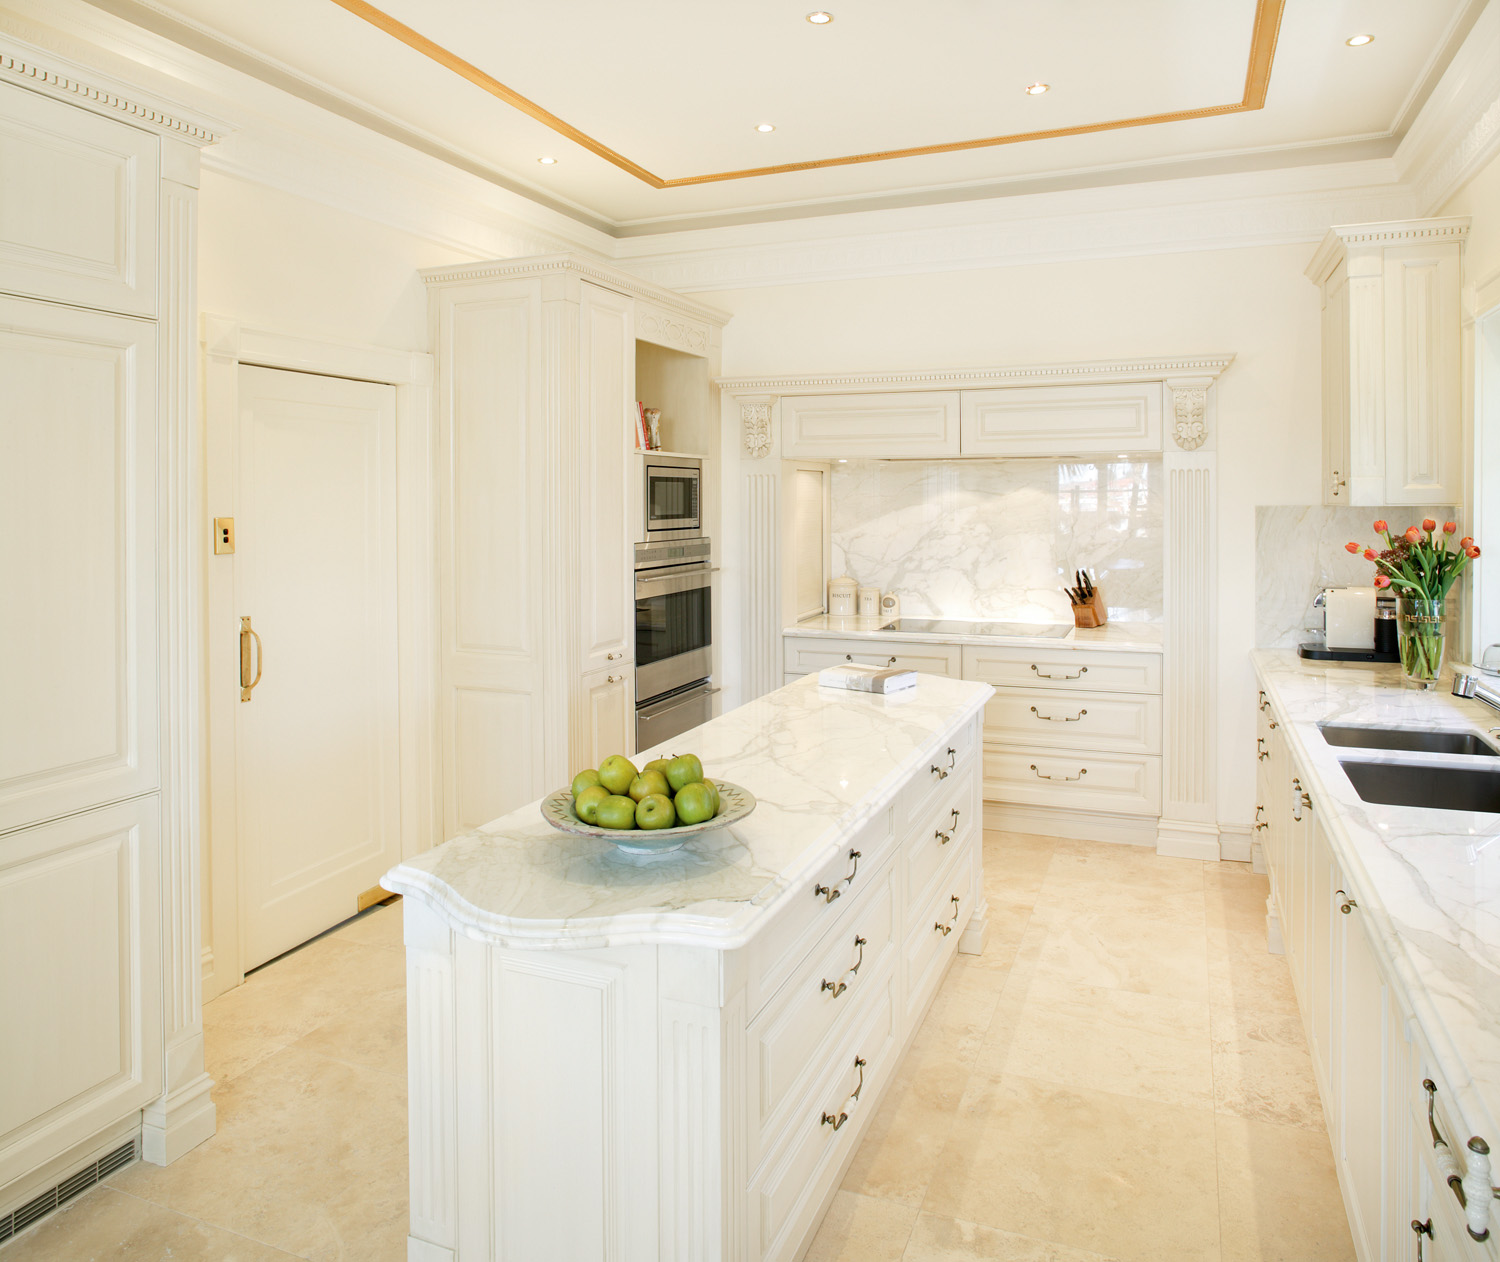 French provincial select kitchens country style kitchen for French provincial kitchen designs melbourne